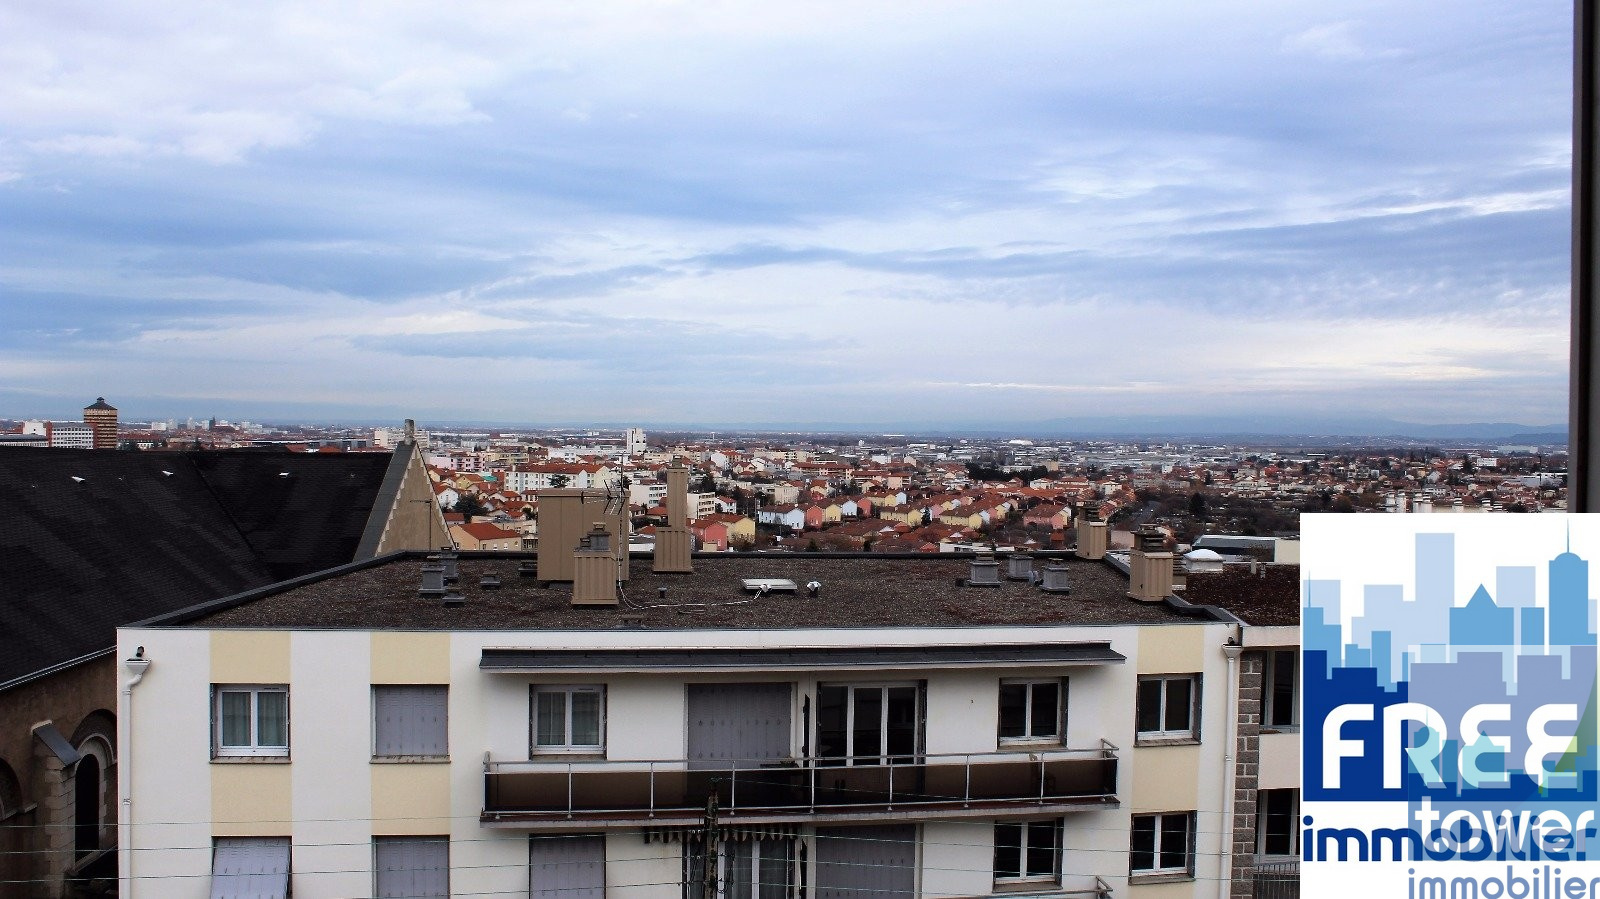 Vente appartement a vendre clermont ferrand for Vente appartement atypique clermont ferrand